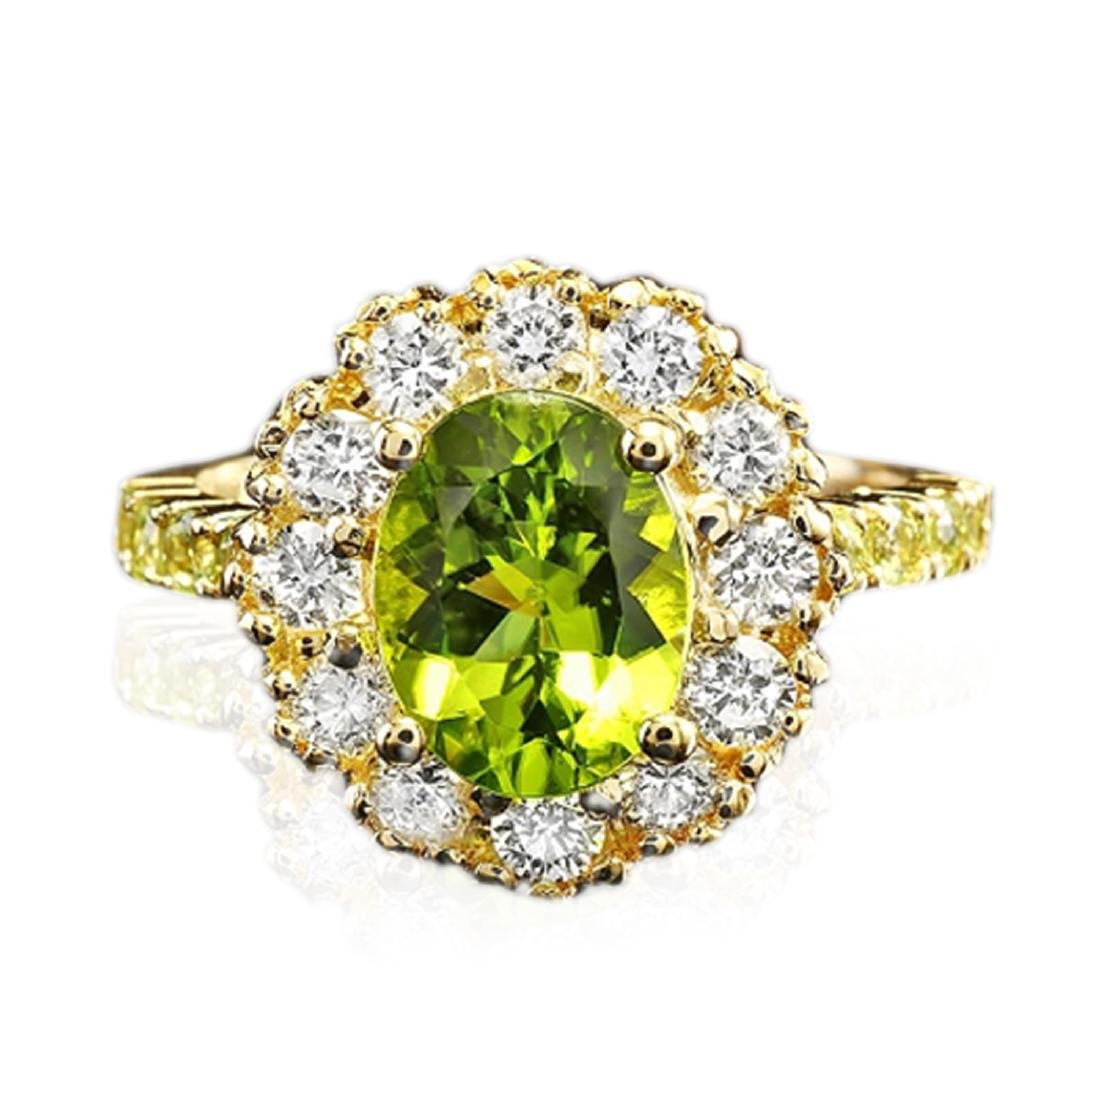 2.68 Carat Natural Peridot 18K Solid Yellow Gold